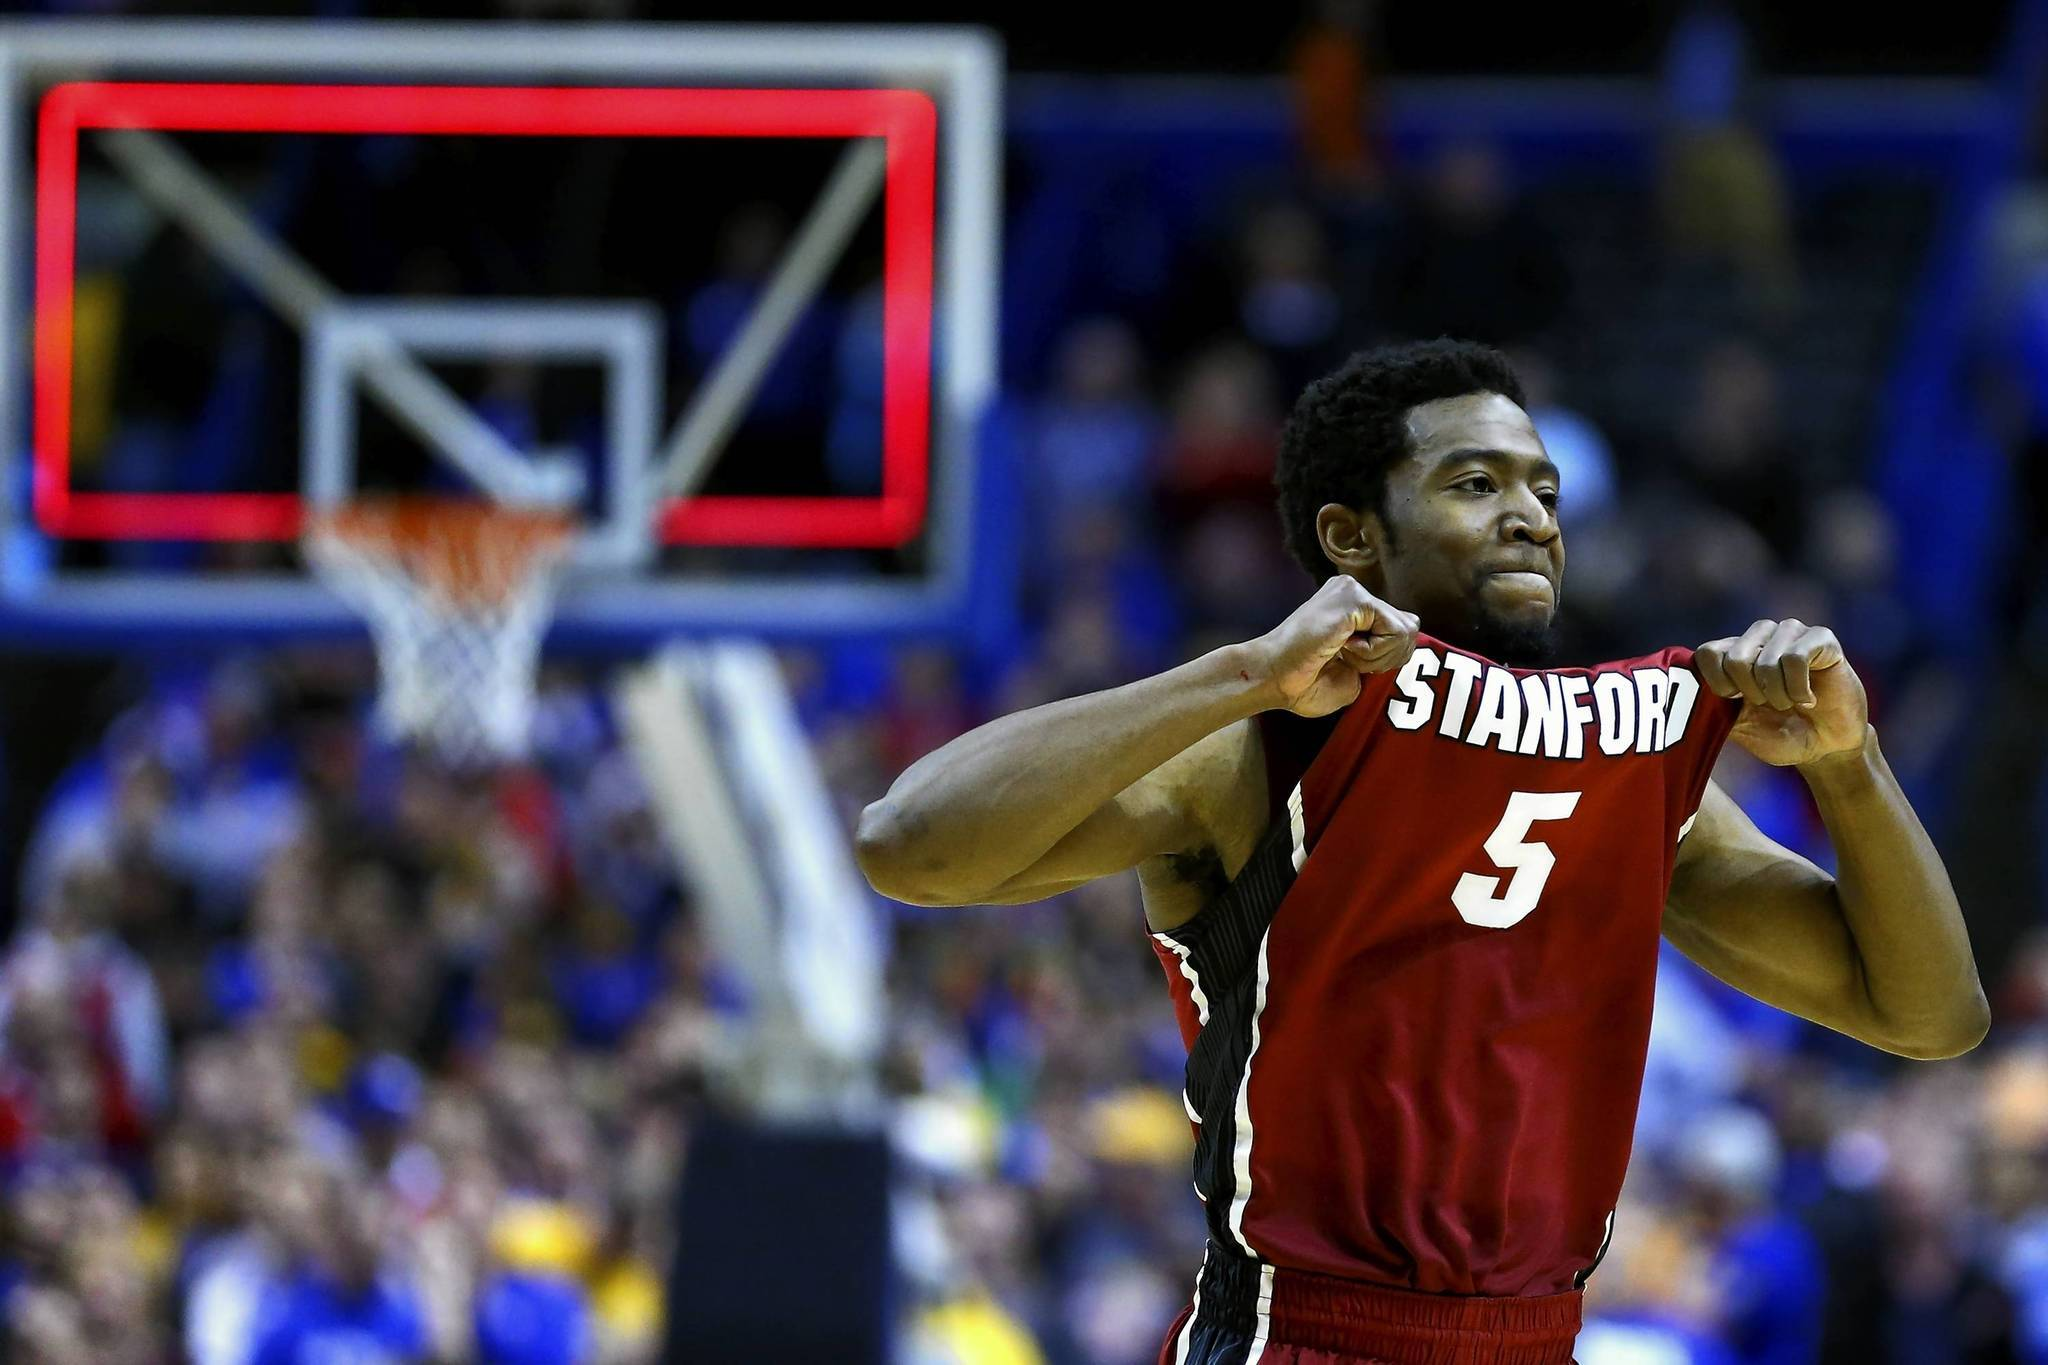 Chasson Randle of Stanford celebrates after defeating Kansas.